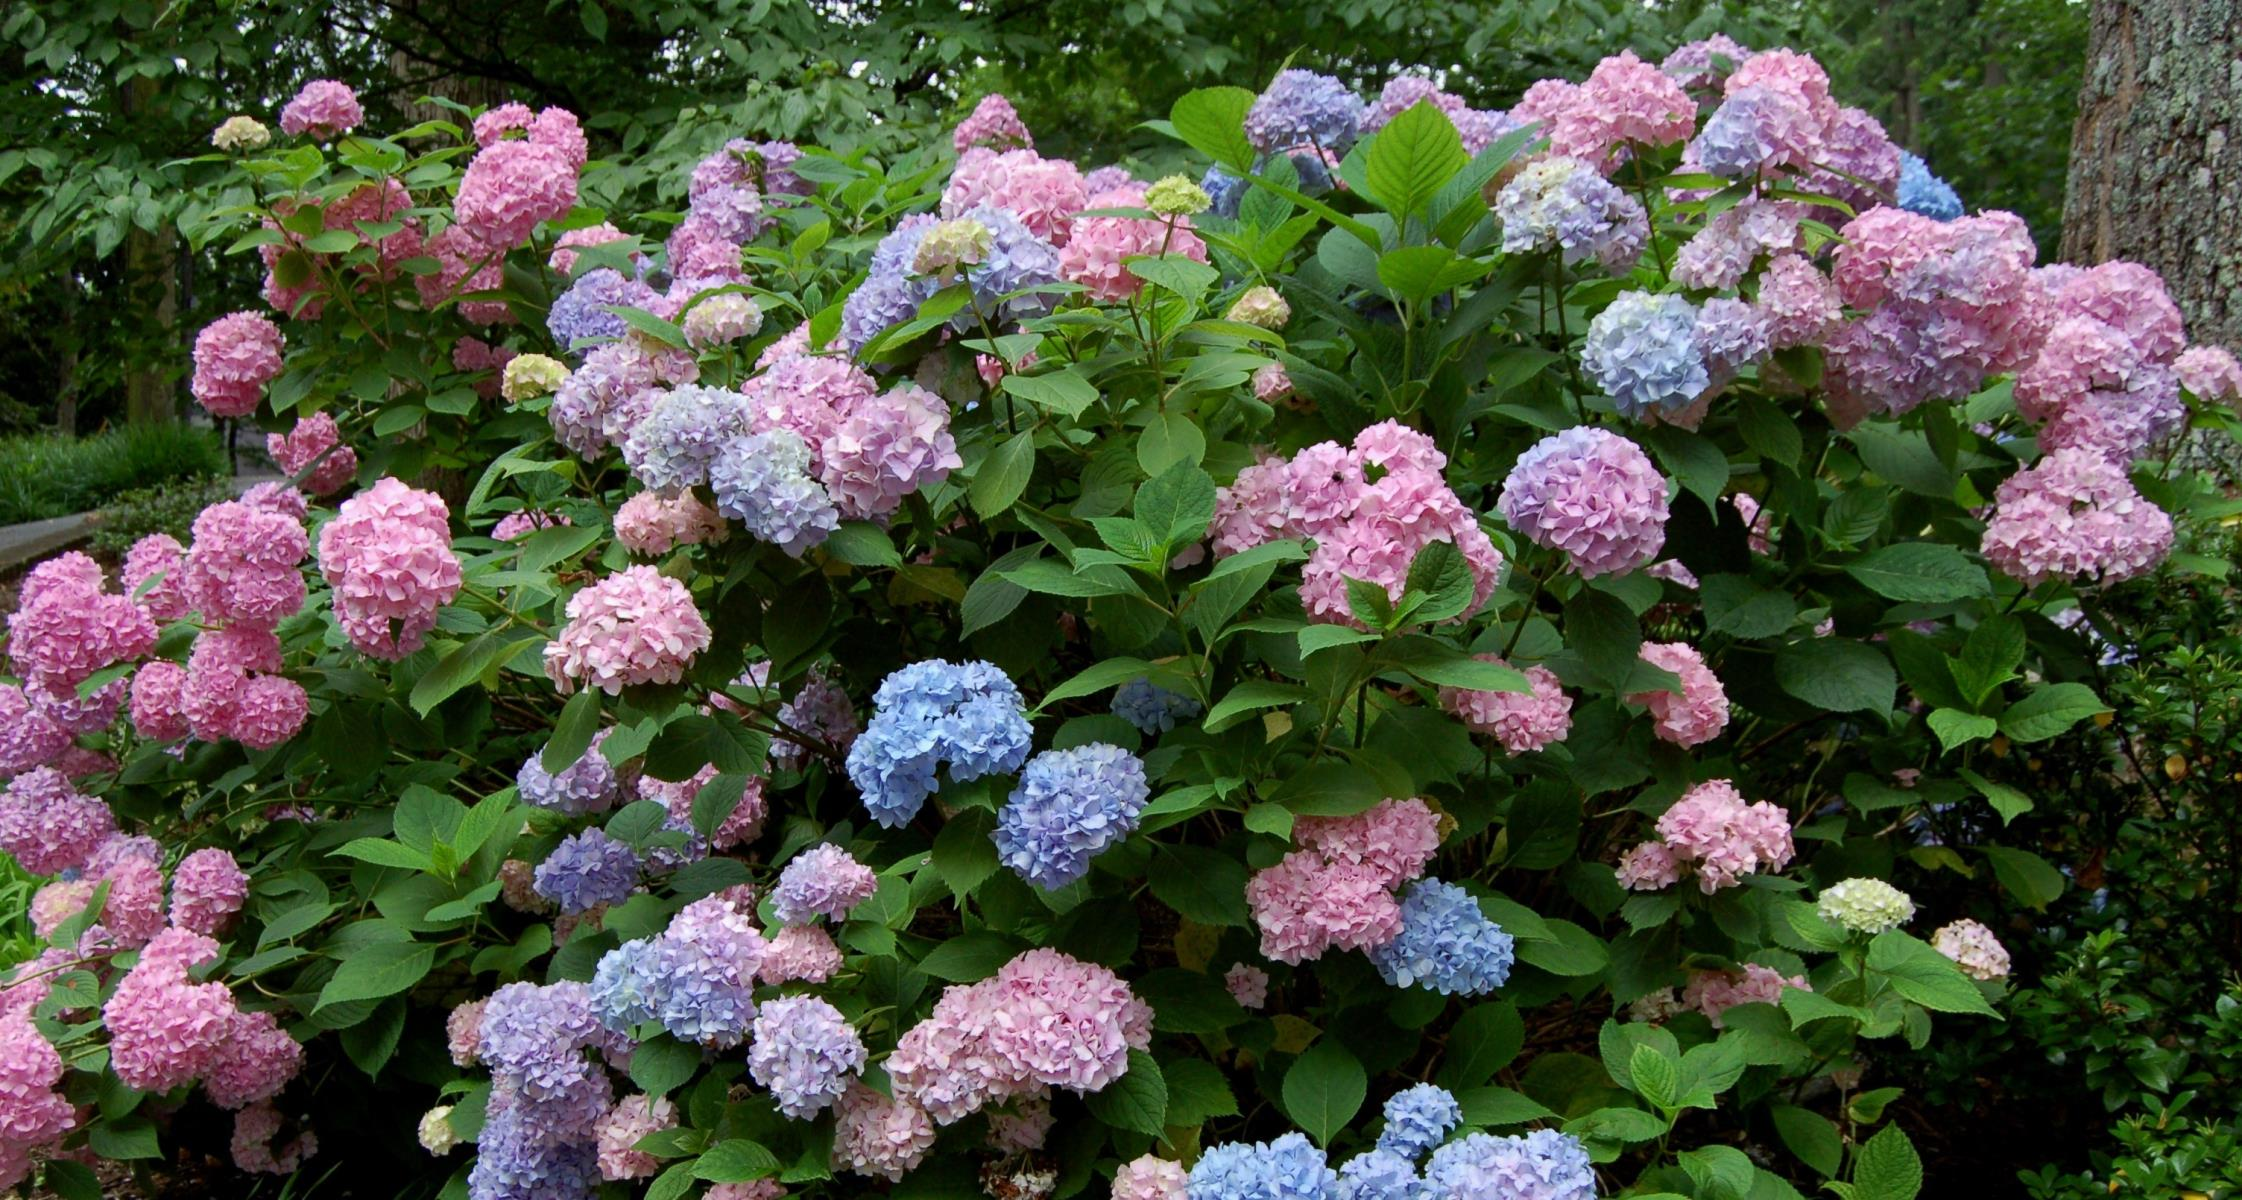 #TeachingTuesday: Bigleaf Hydrangea